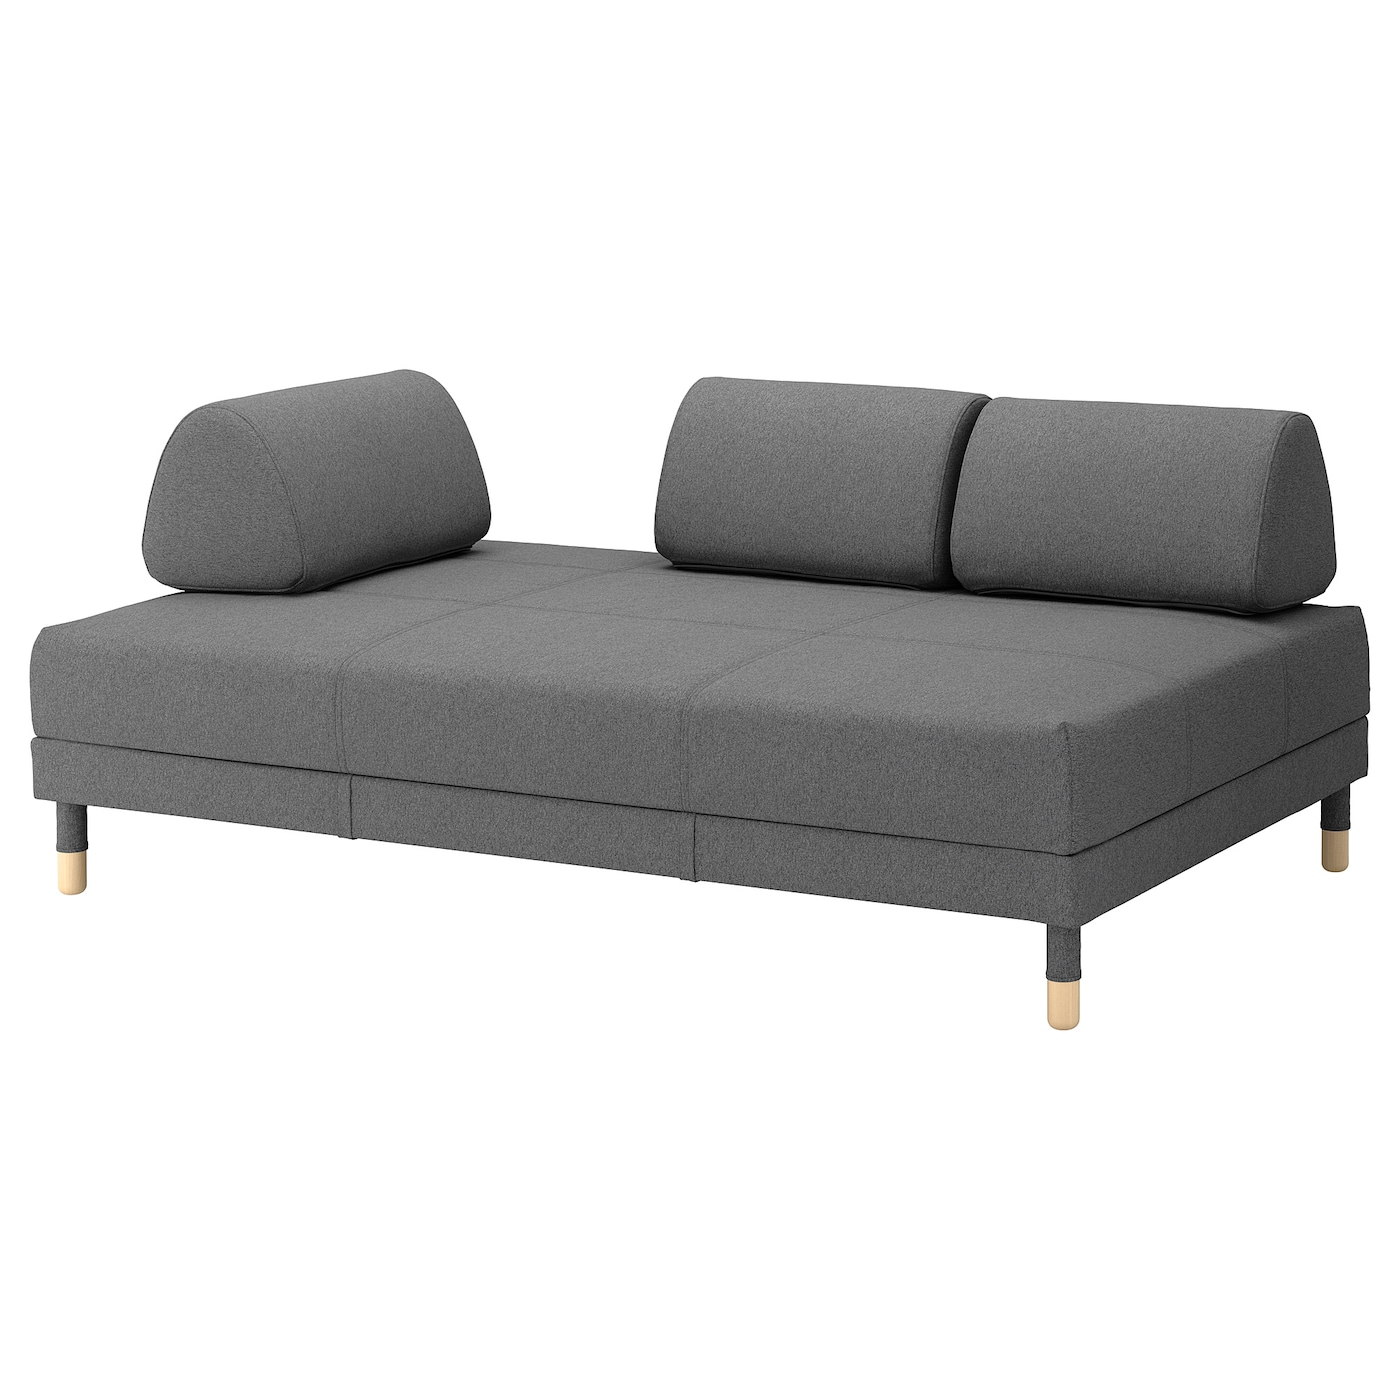 flottebo cover sofa bed lysed dark grey 120 cm ikea. Black Bedroom Furniture Sets. Home Design Ideas